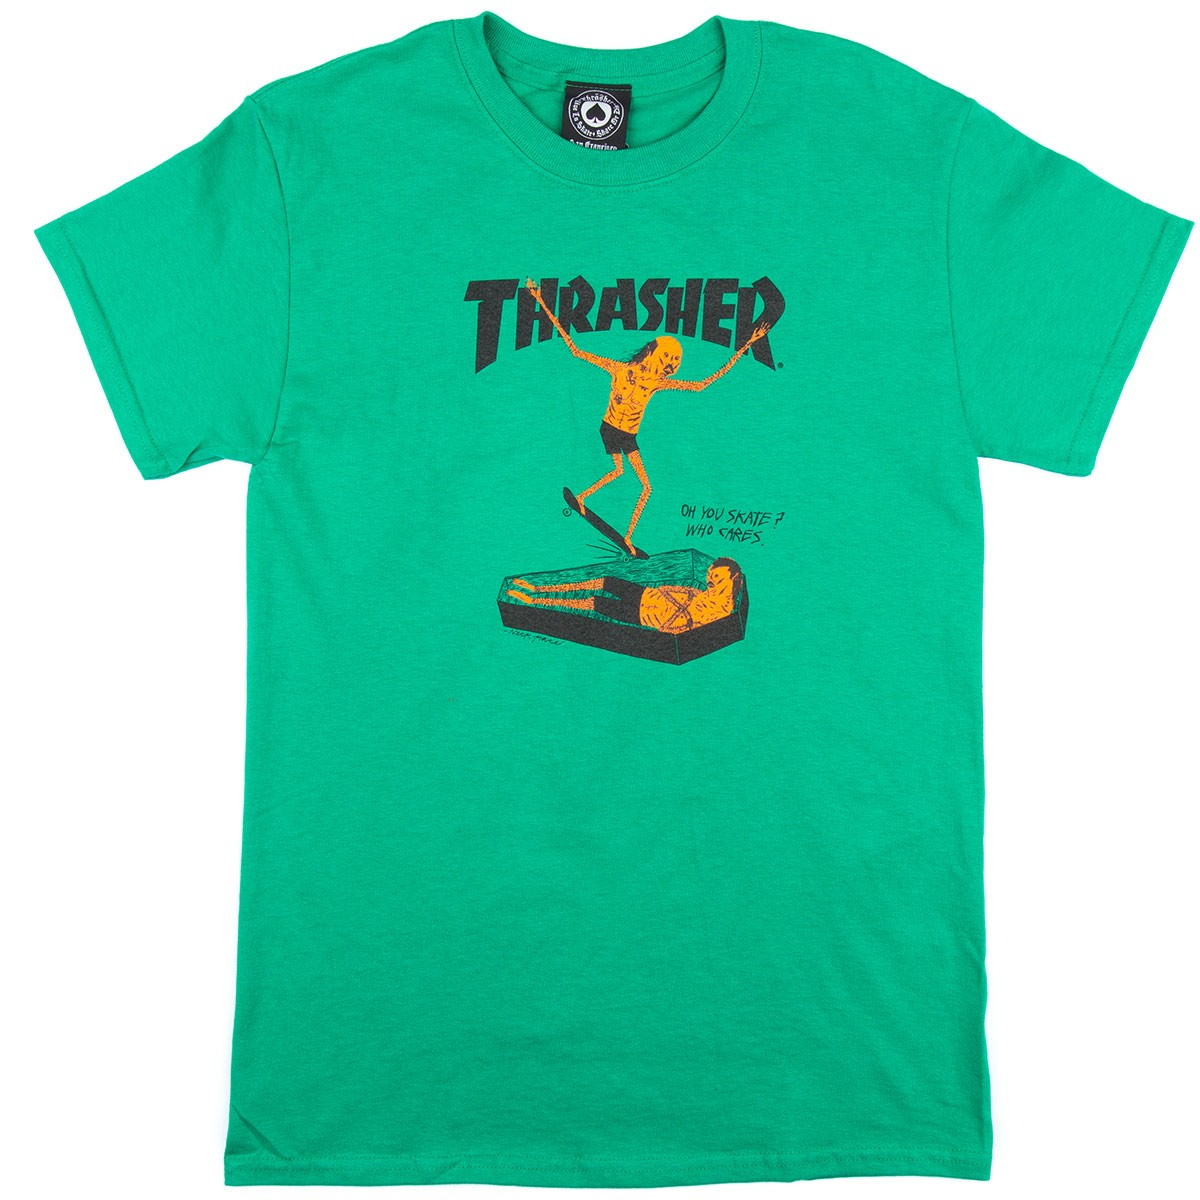 thrasher-neck-face-t-shirt-kelly-green 1.1506737340.jpg 6ca0056af4